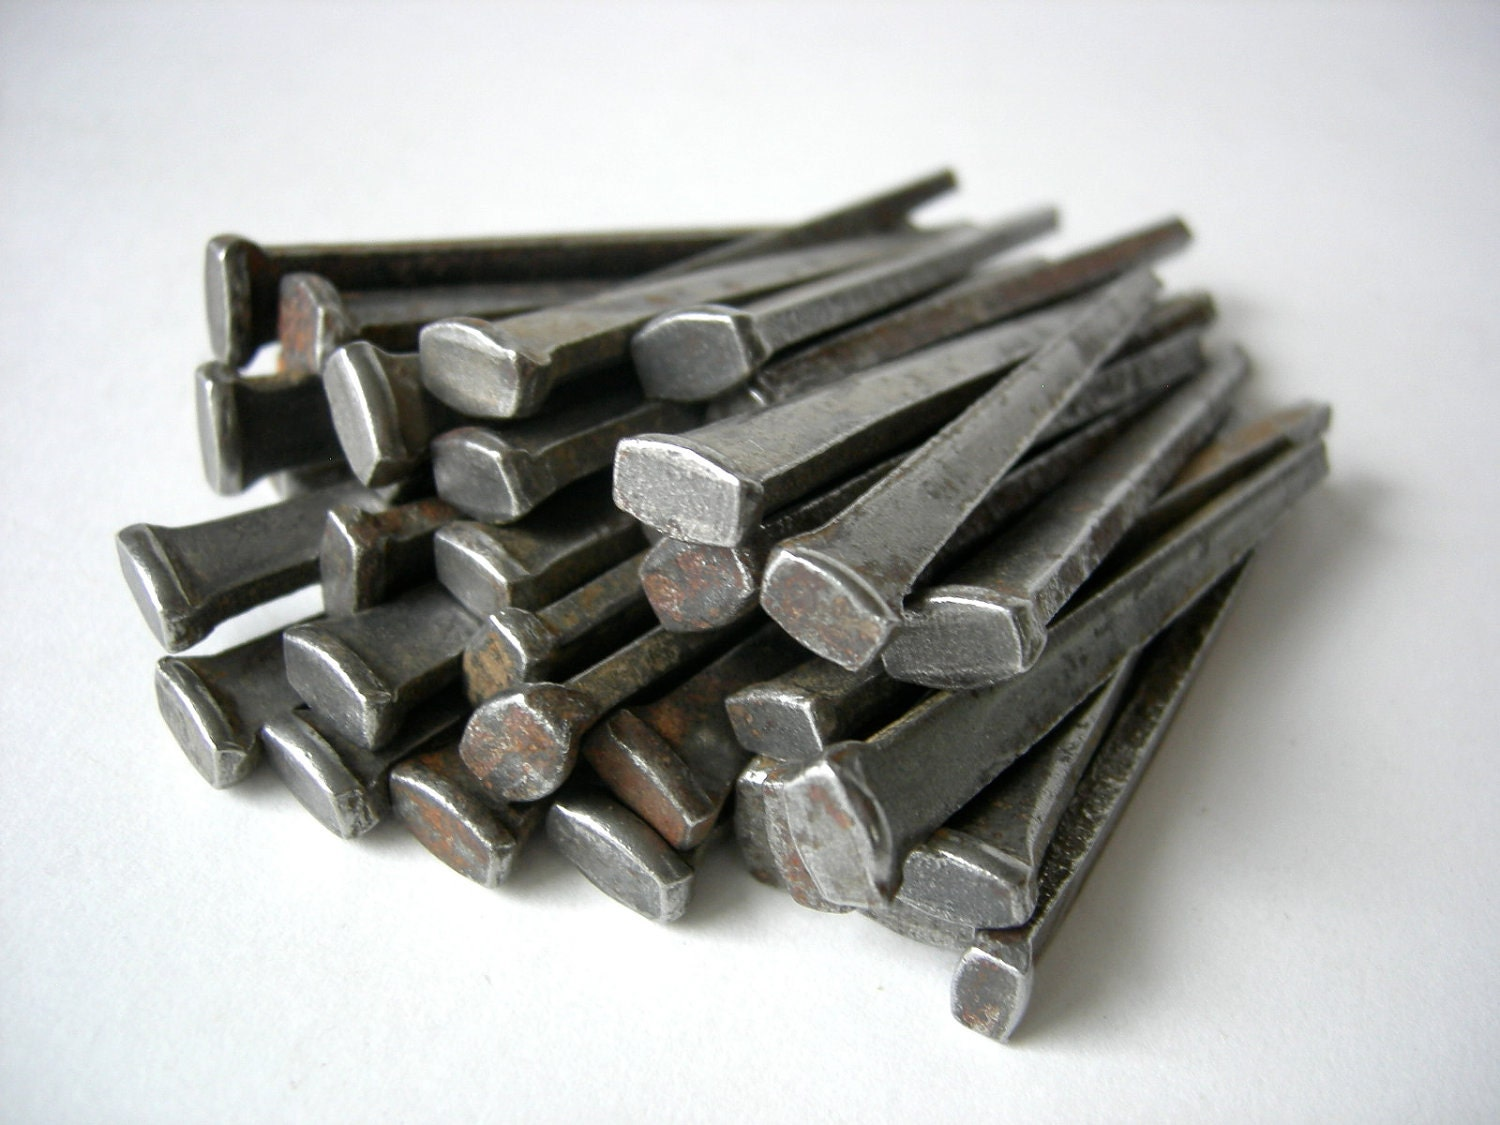 Square Head Nails set of 25